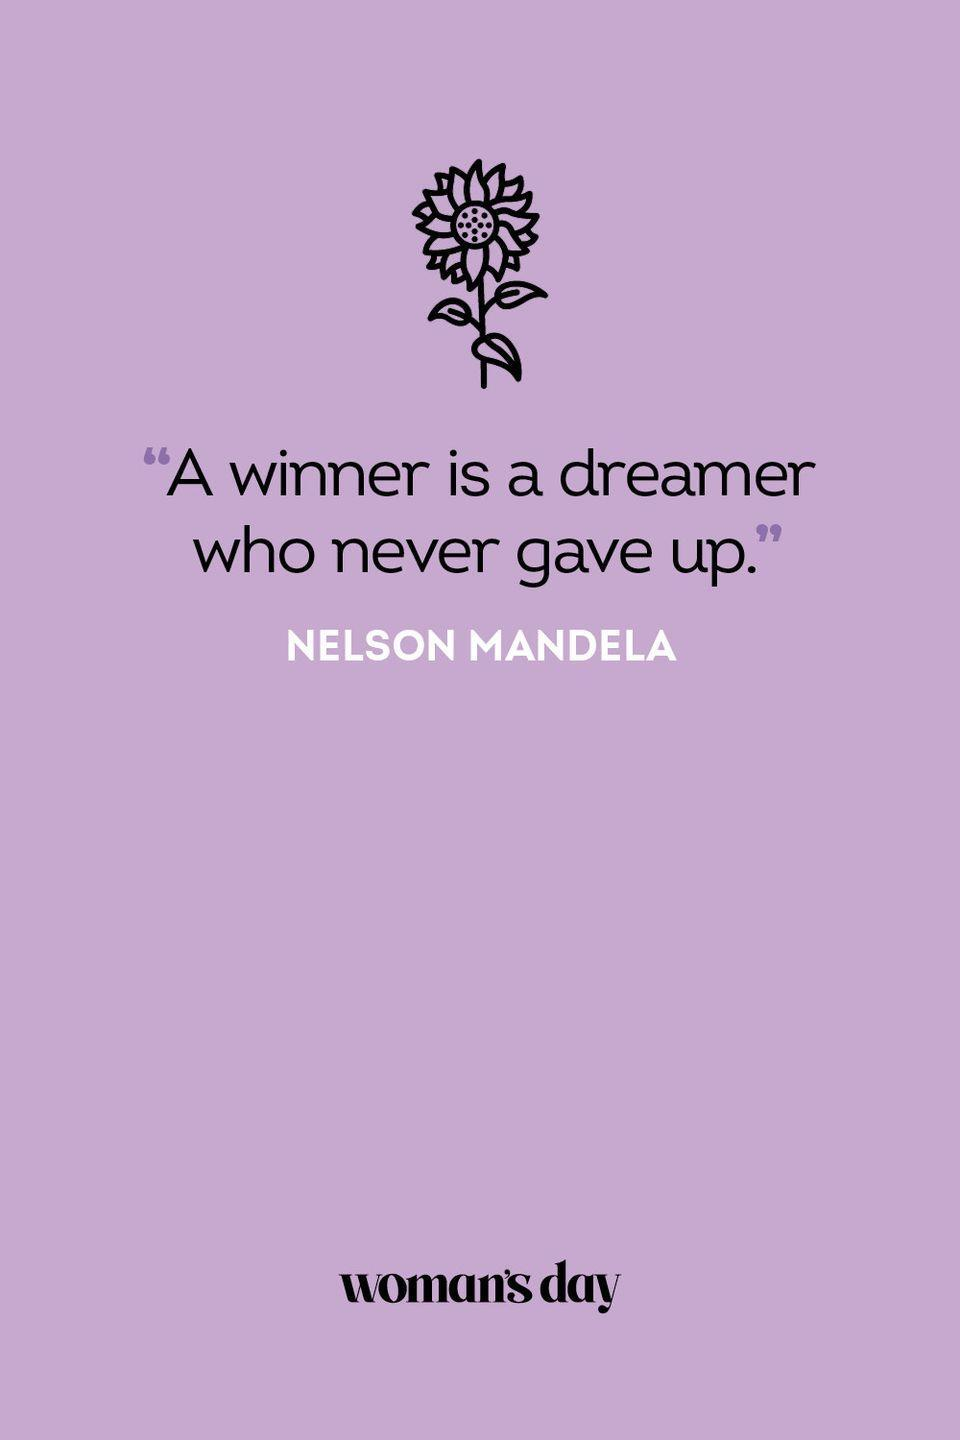 <p>A winner is a dreamer who never gave up.</p>